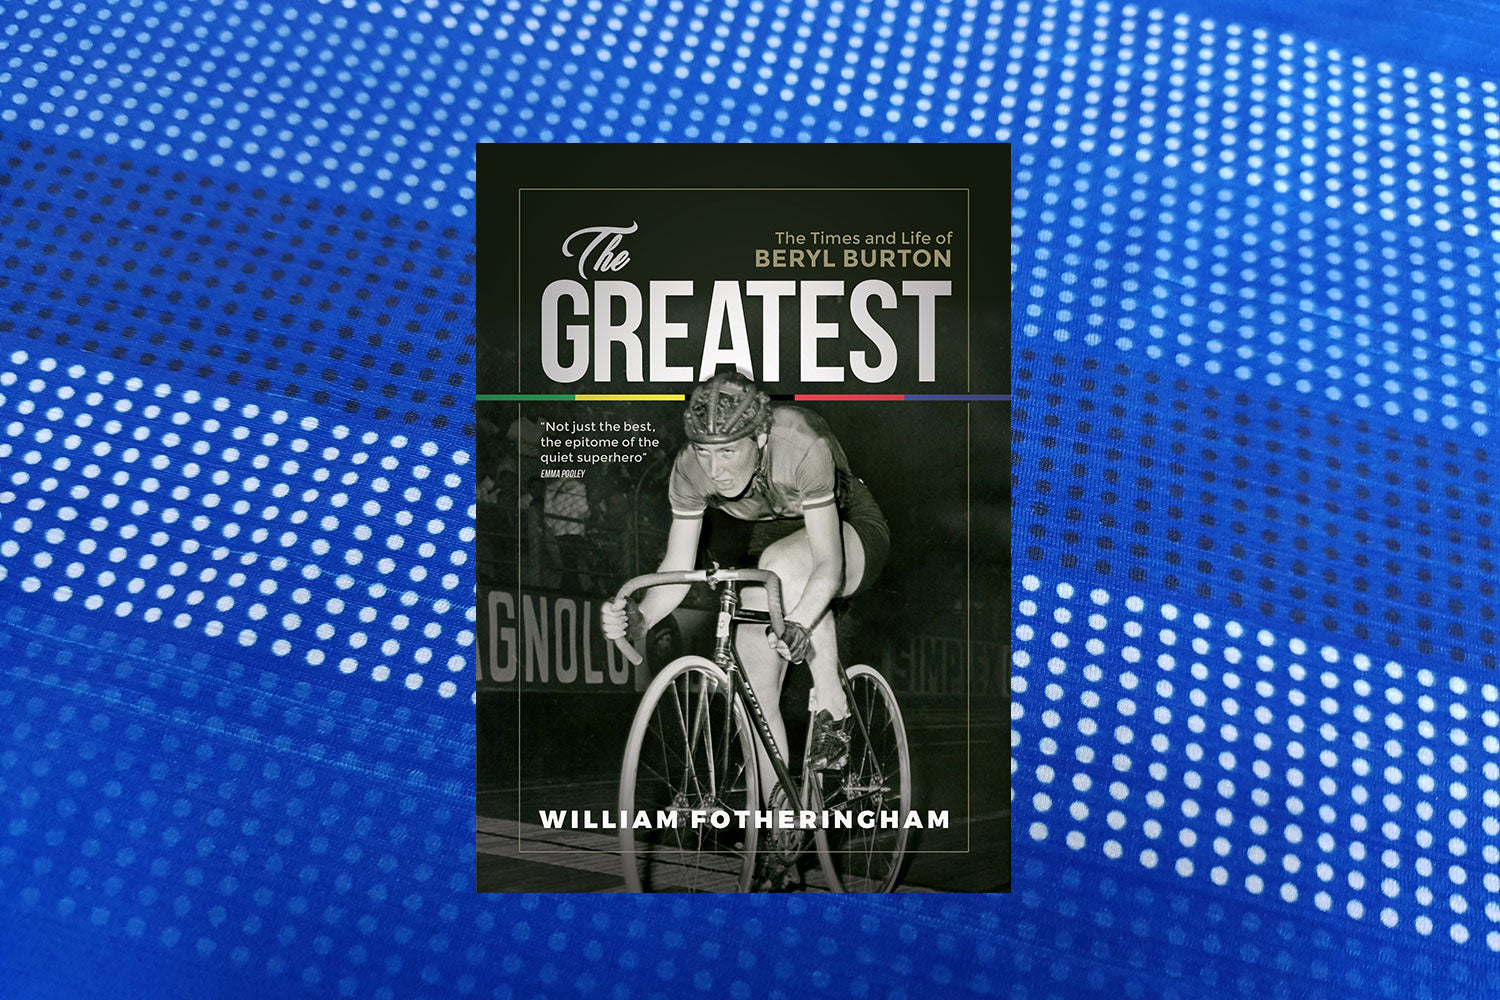 We sat down with William Fotheringham for a Q&A about his latest book The Greatest: The life and times of Beryl Burton.